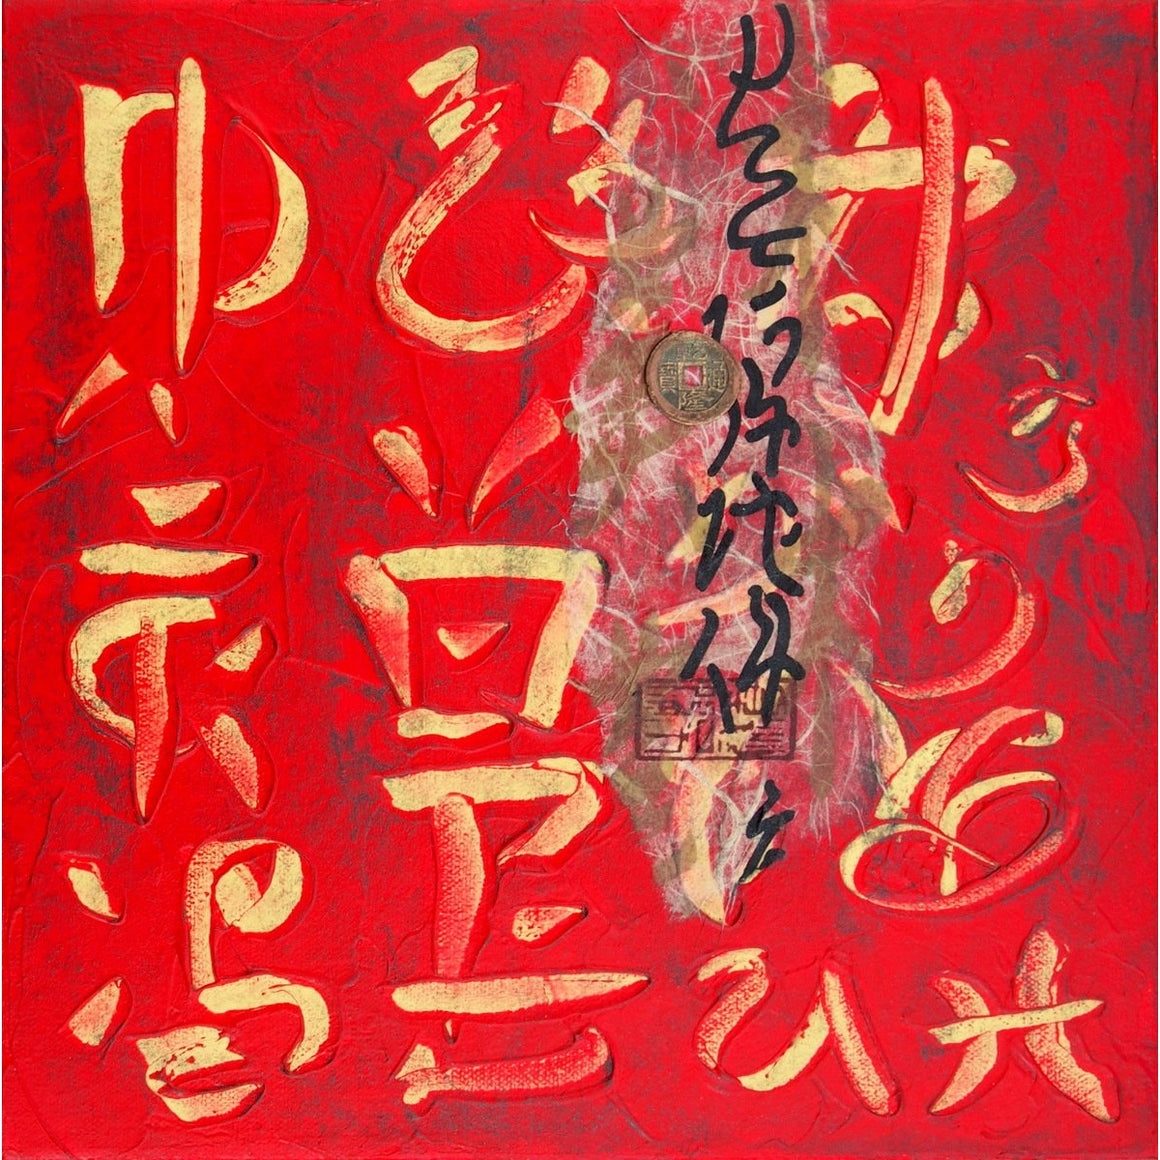 "'Fortune' Original Art Asian Fusion Series Mixed Media Painting 12"" x 12"""